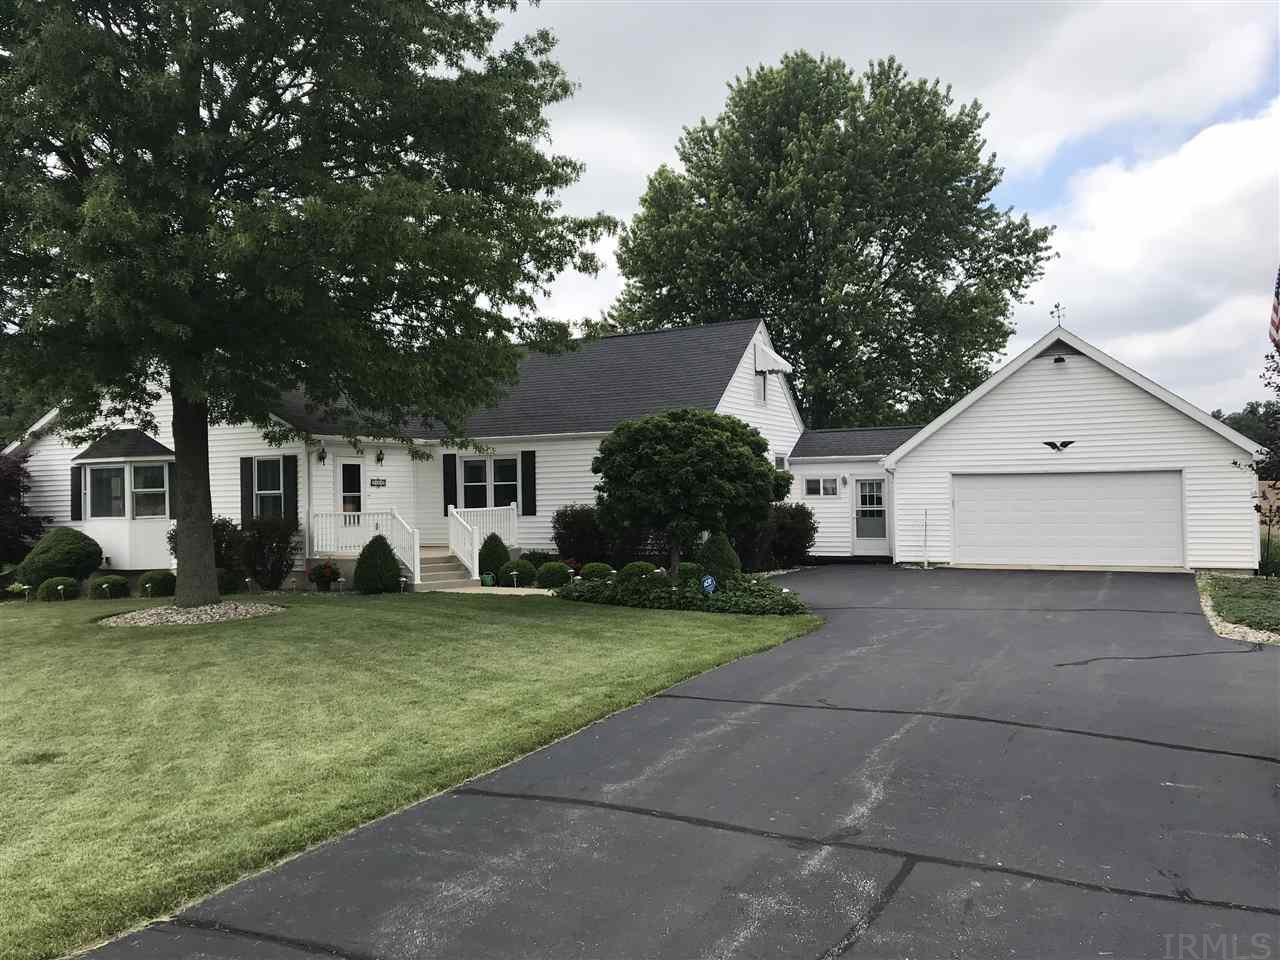 21819 State Road 4 Lakeville, IN 46536